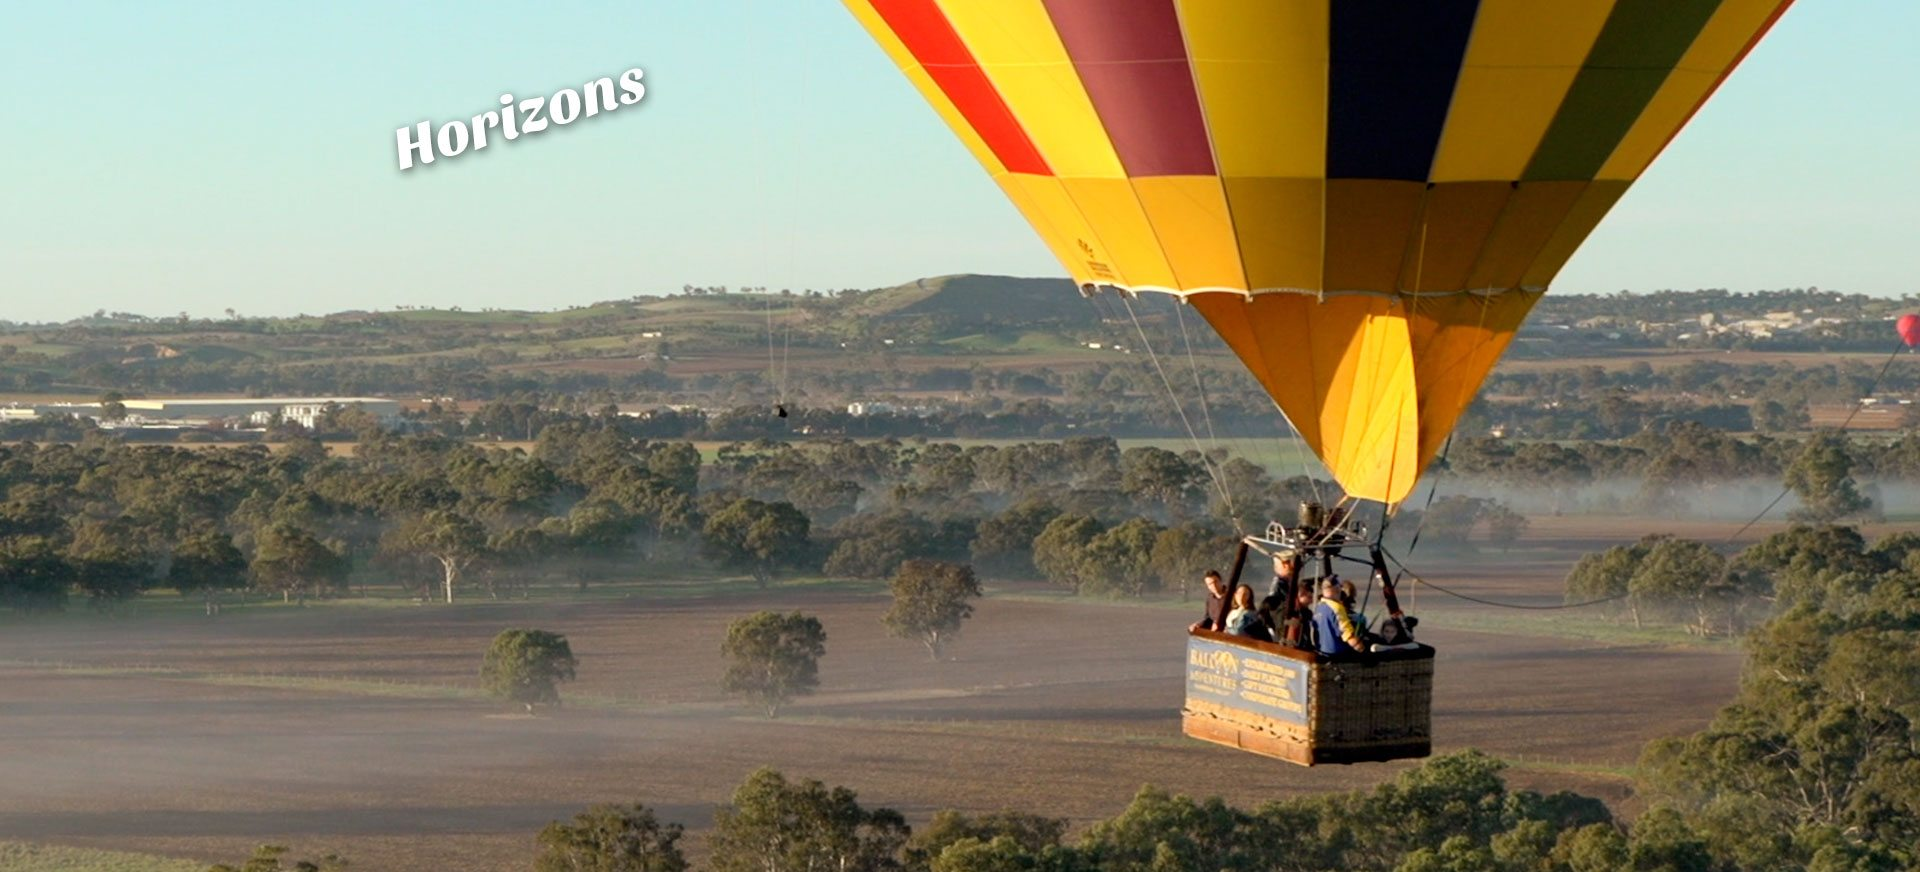 balloon-adventures-hot-air-balloon-flights-over-the-barossa-valley-flight-step-14